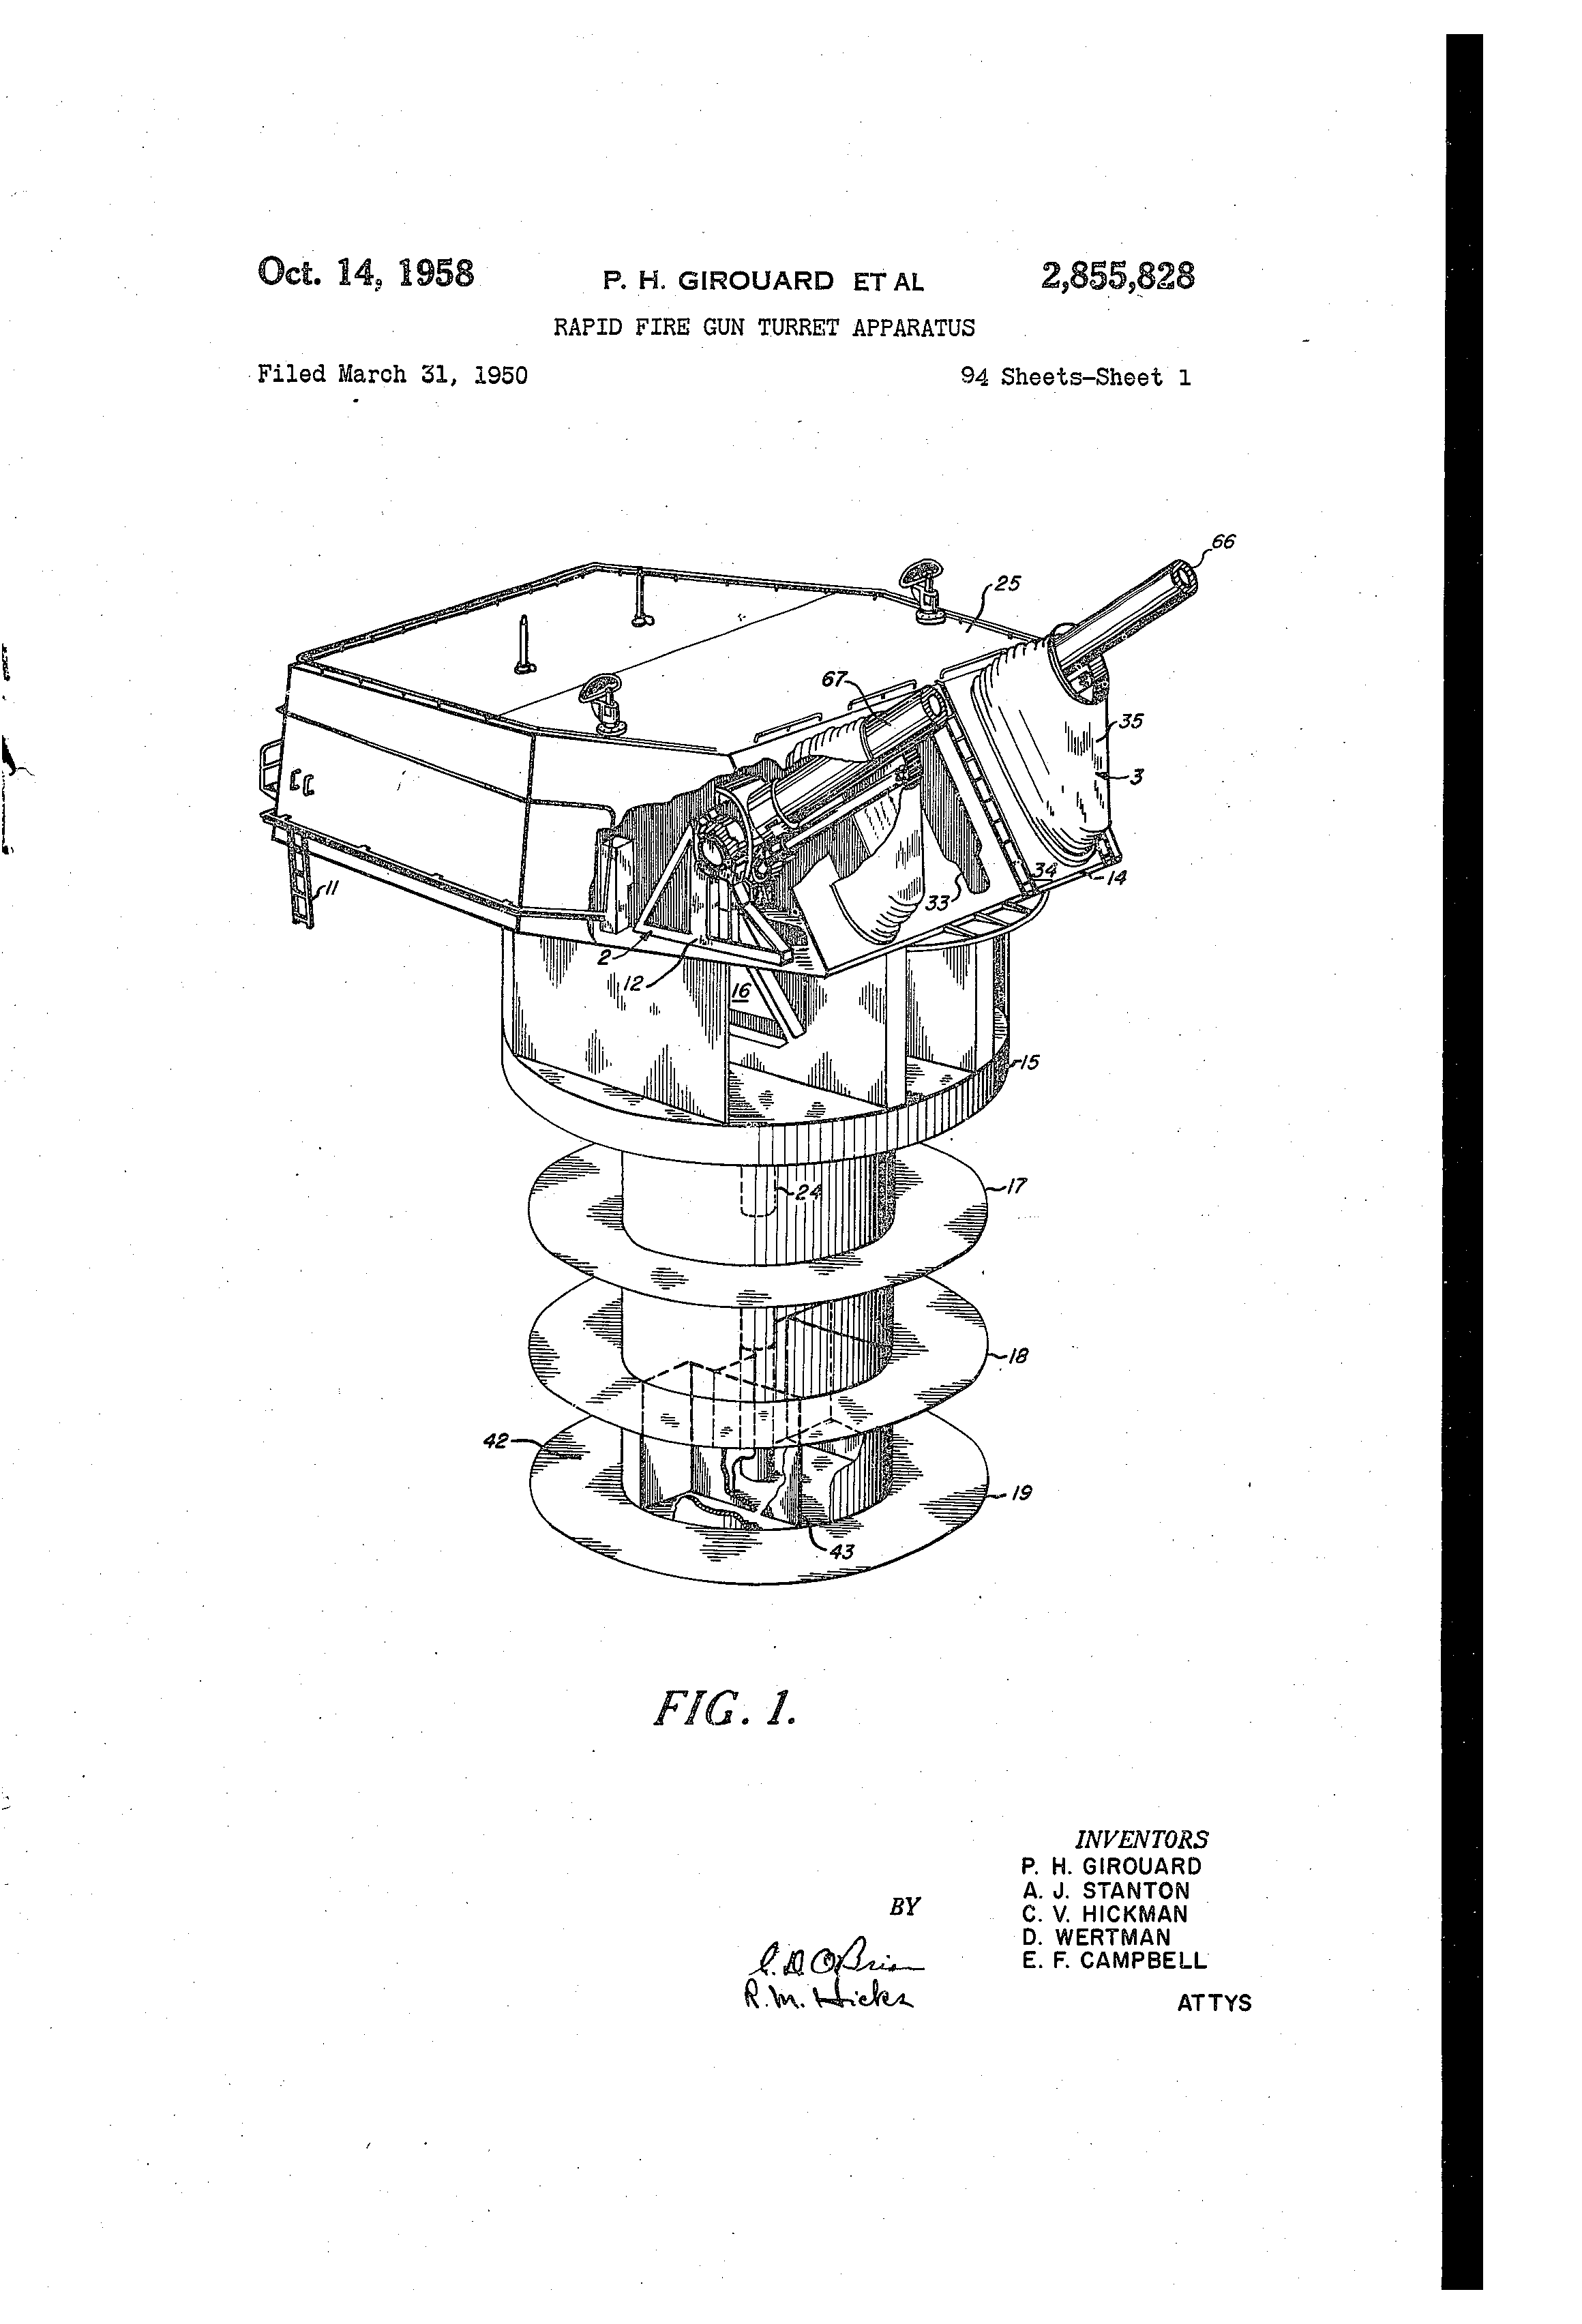 Pin On Weapons And Military Patents